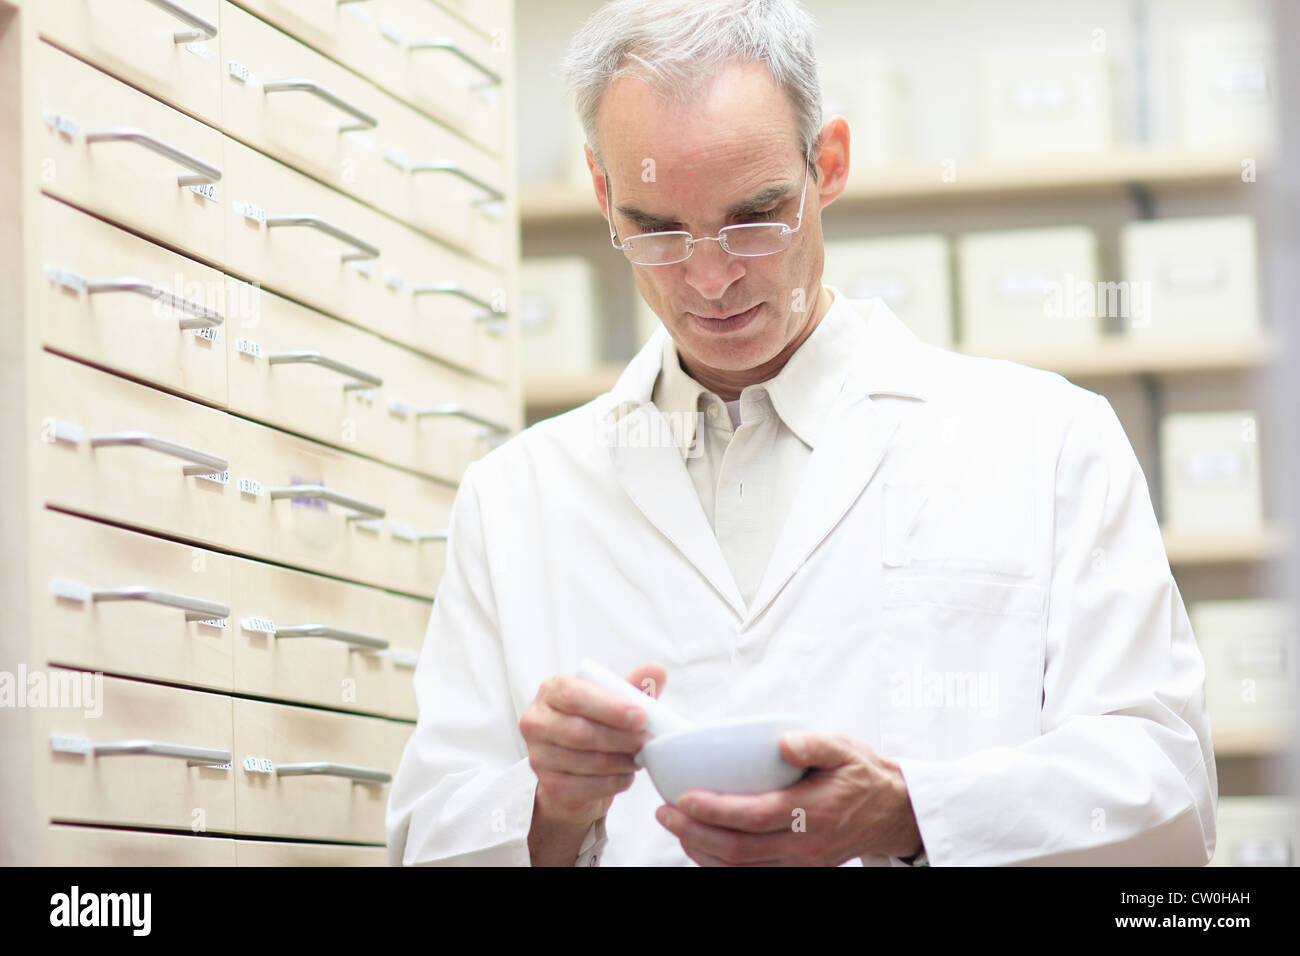 Pharmacist using pestle and mortar - Stock Image